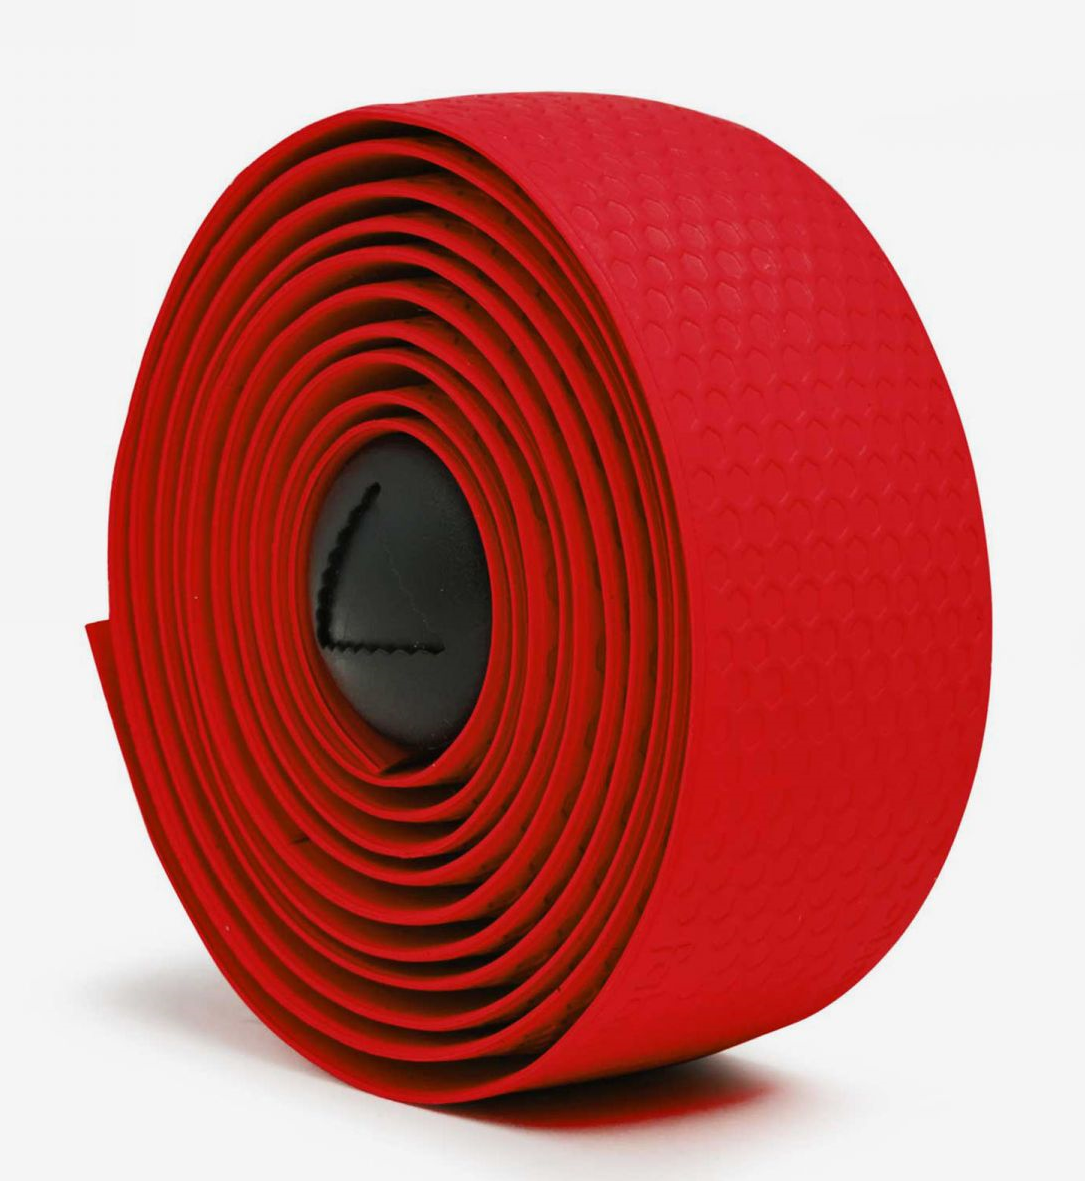 Afbeelding Fabric Fietsstuurlint rubber Rood- / Silicone Bar Tape RD